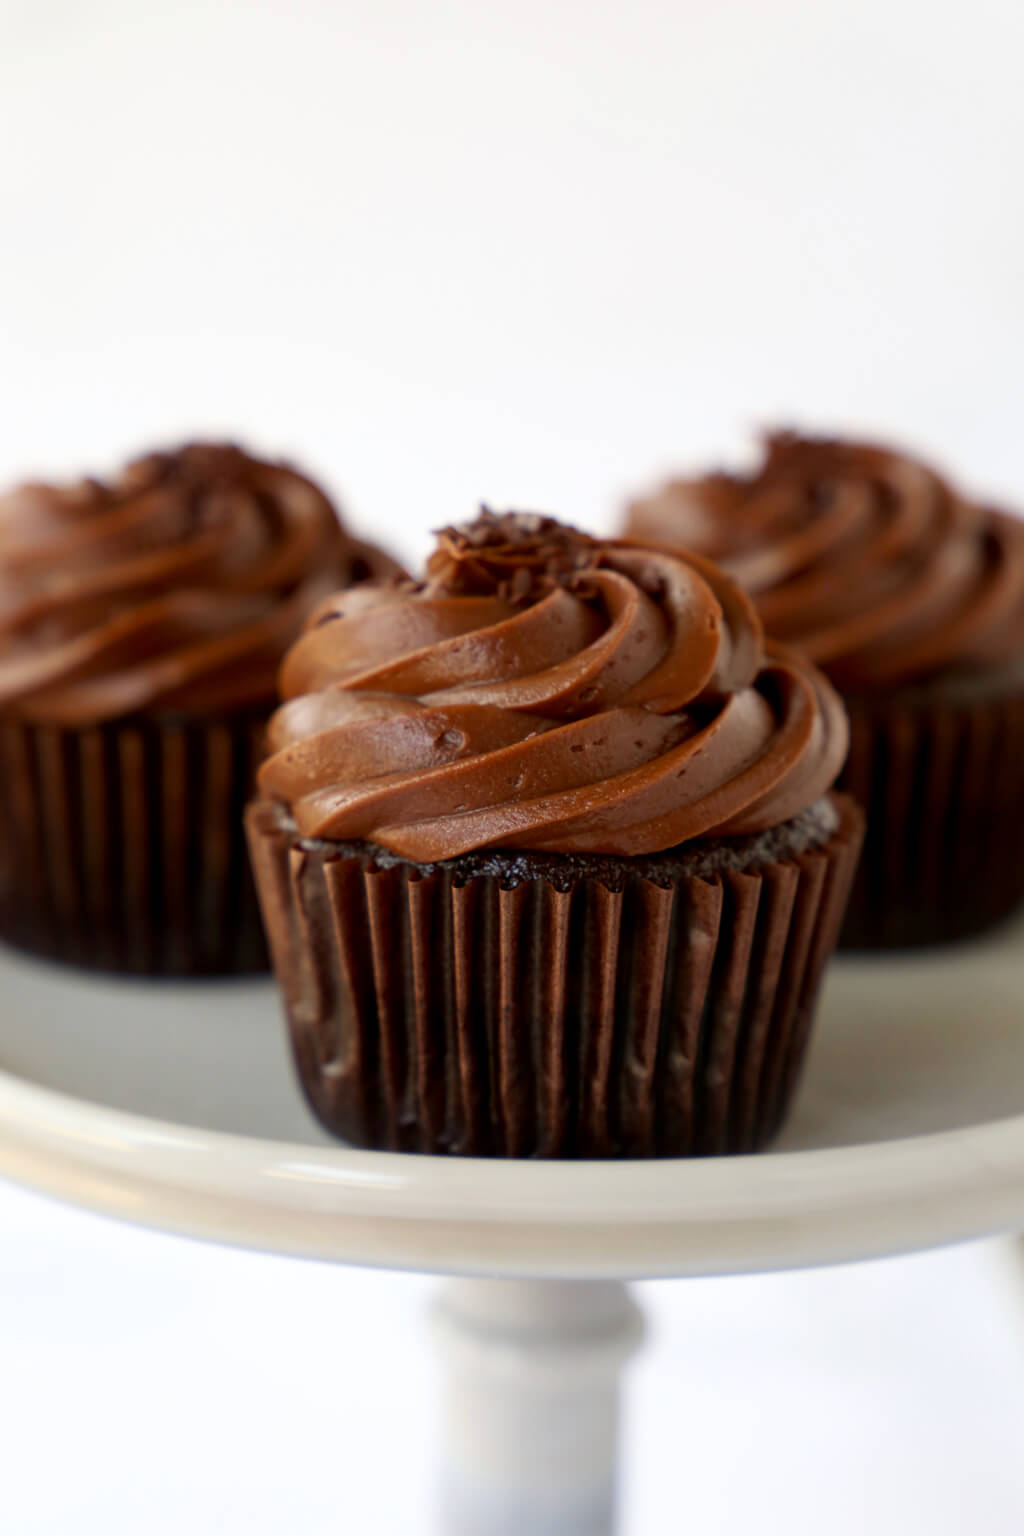 Three Chocolate Fudge Cupcakes on a cake stand